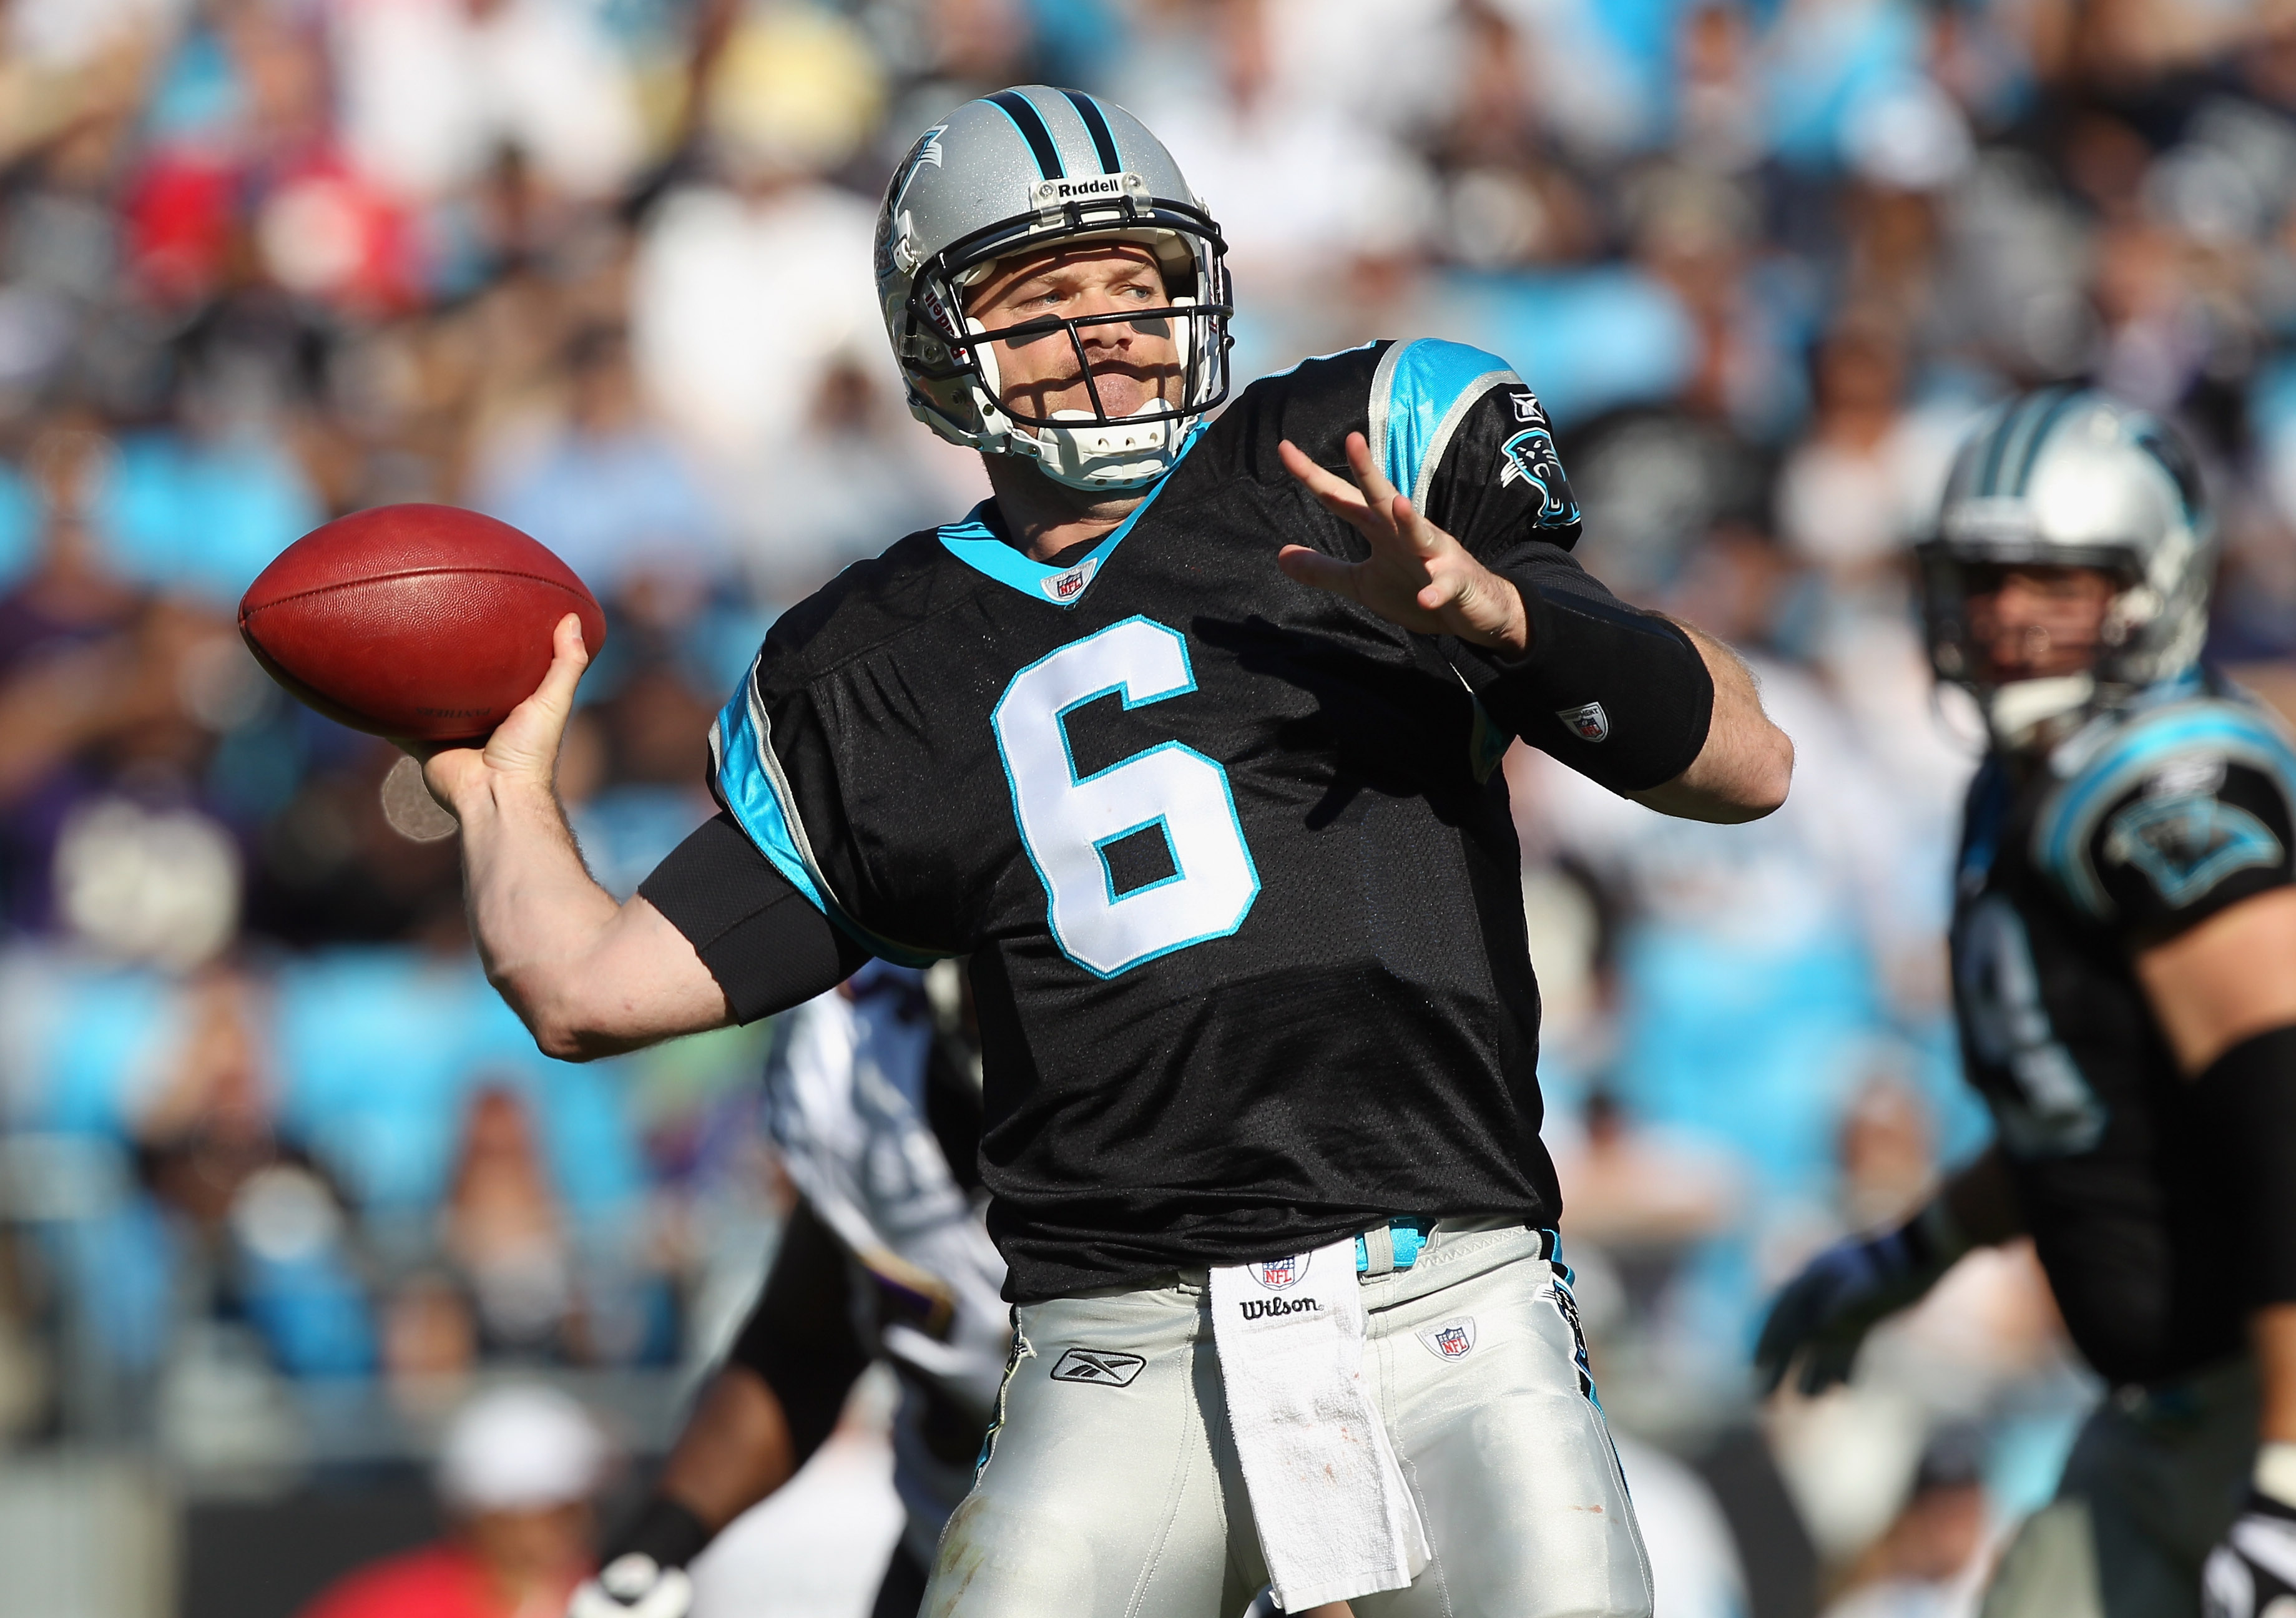 CHARLOTTE, NC - NOVEMBER 21:  Brian St. Pierre #6 of the Carolina Panthers drops back to throw a pass against the Baltimore Ravens at Bank of America Stadium on November 21, 2010 in Charlotte, North Carolina.  (Photo by Streeter Lecka/Getty Images)